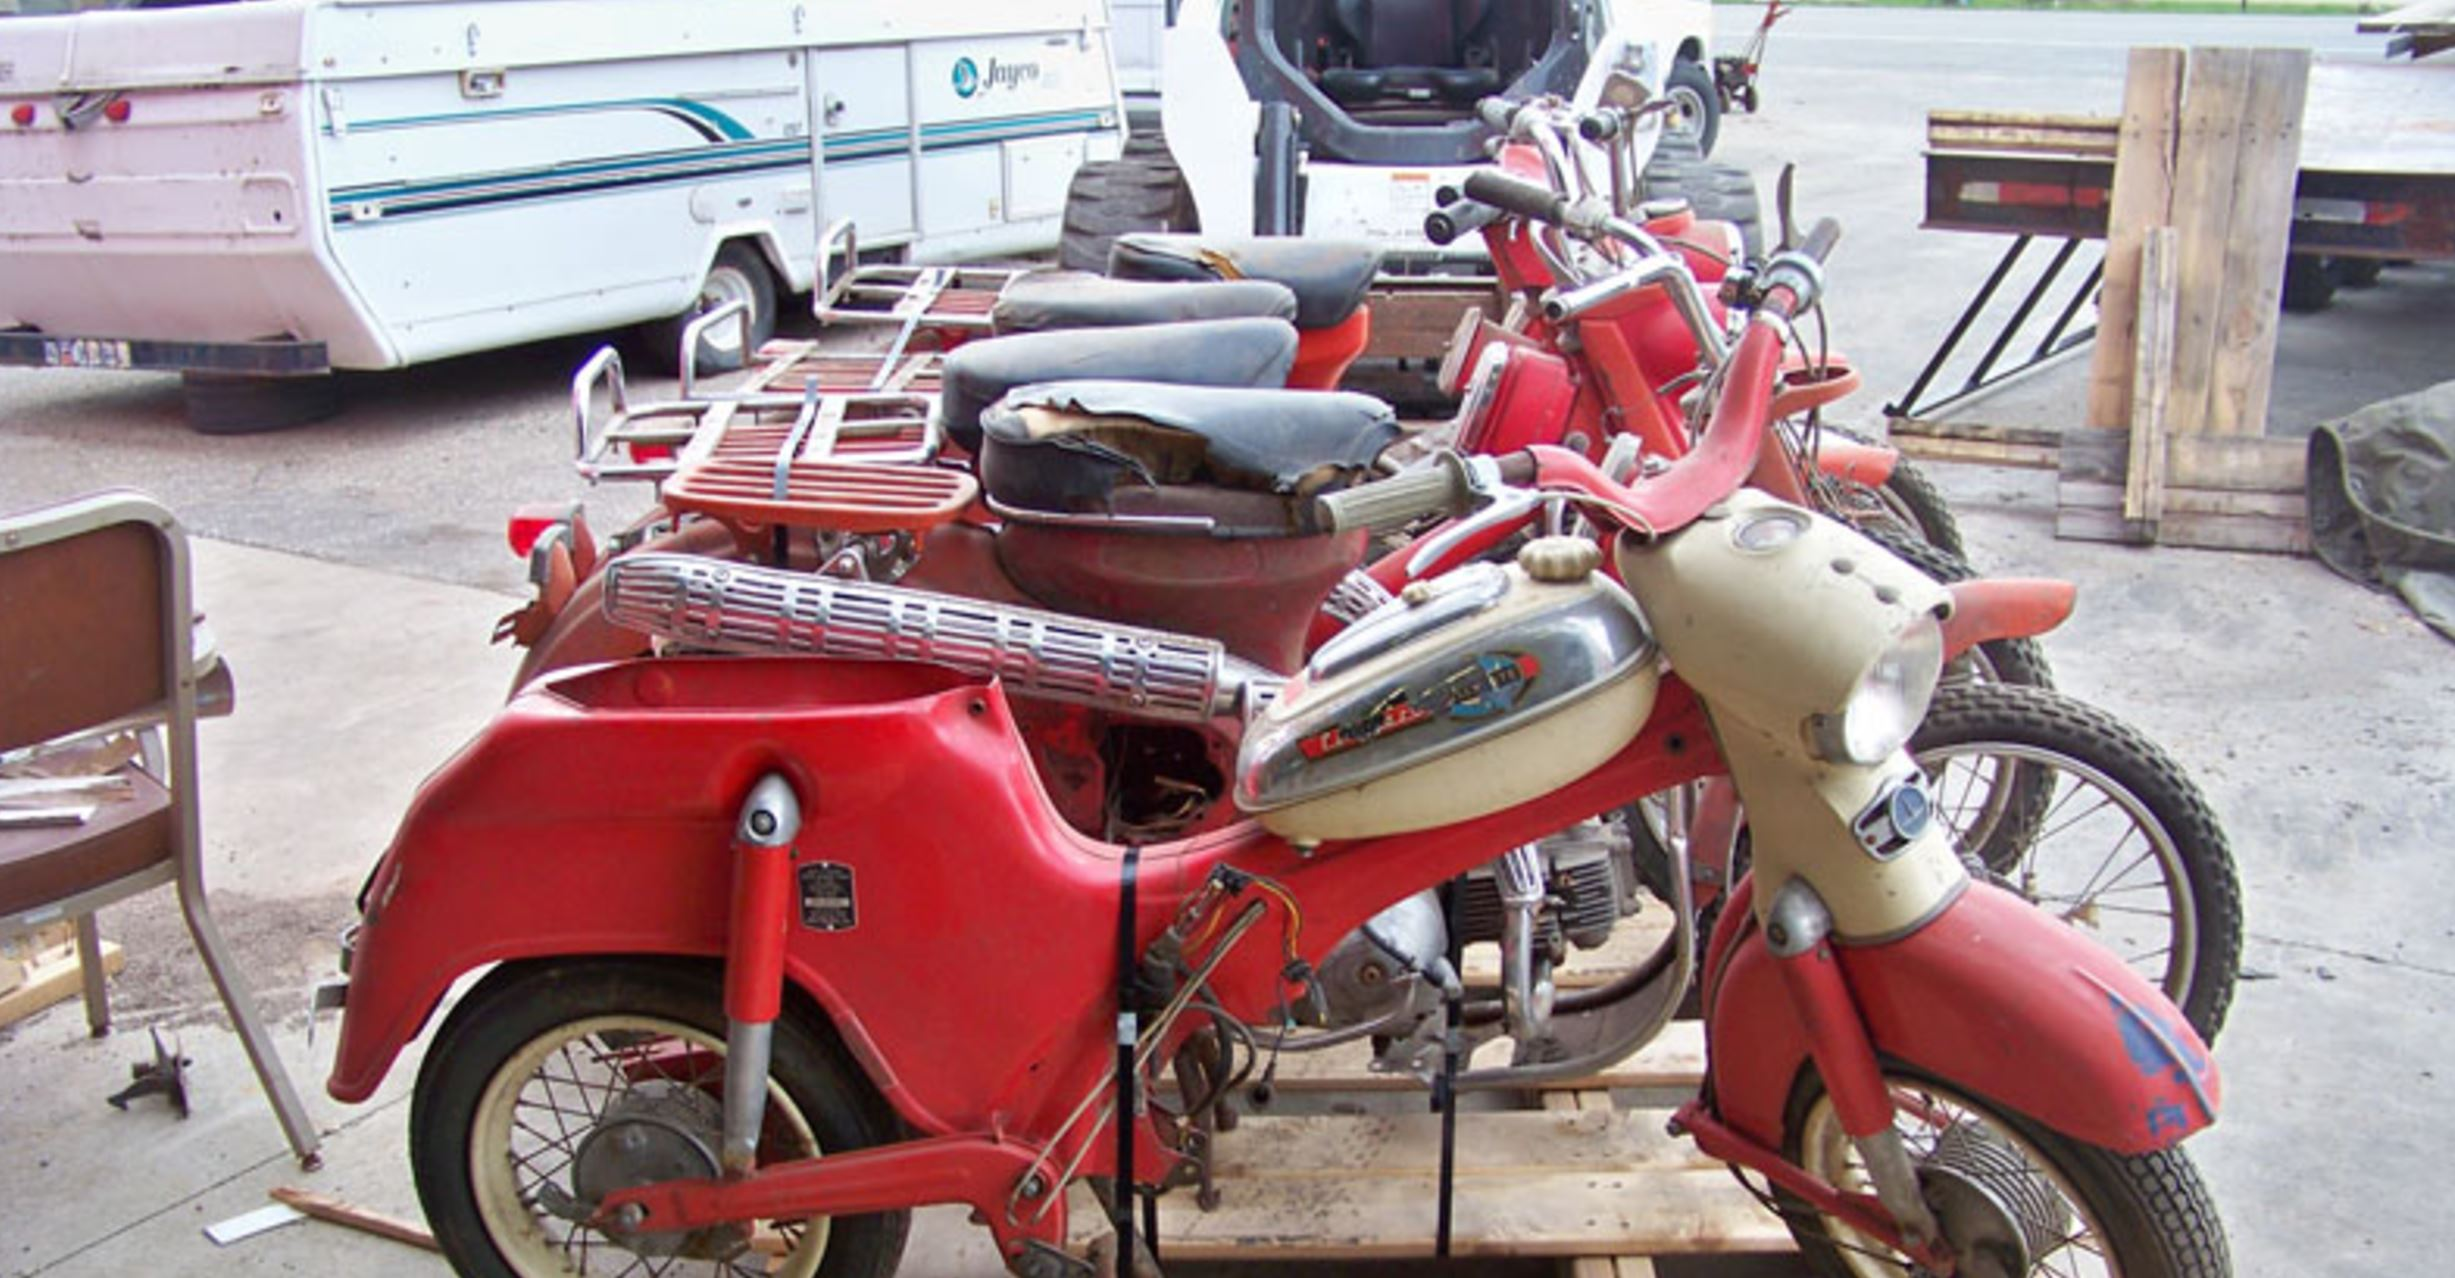 Auction Preview – 450 Vintage Motorcycles in Minnesota | Bike-urious